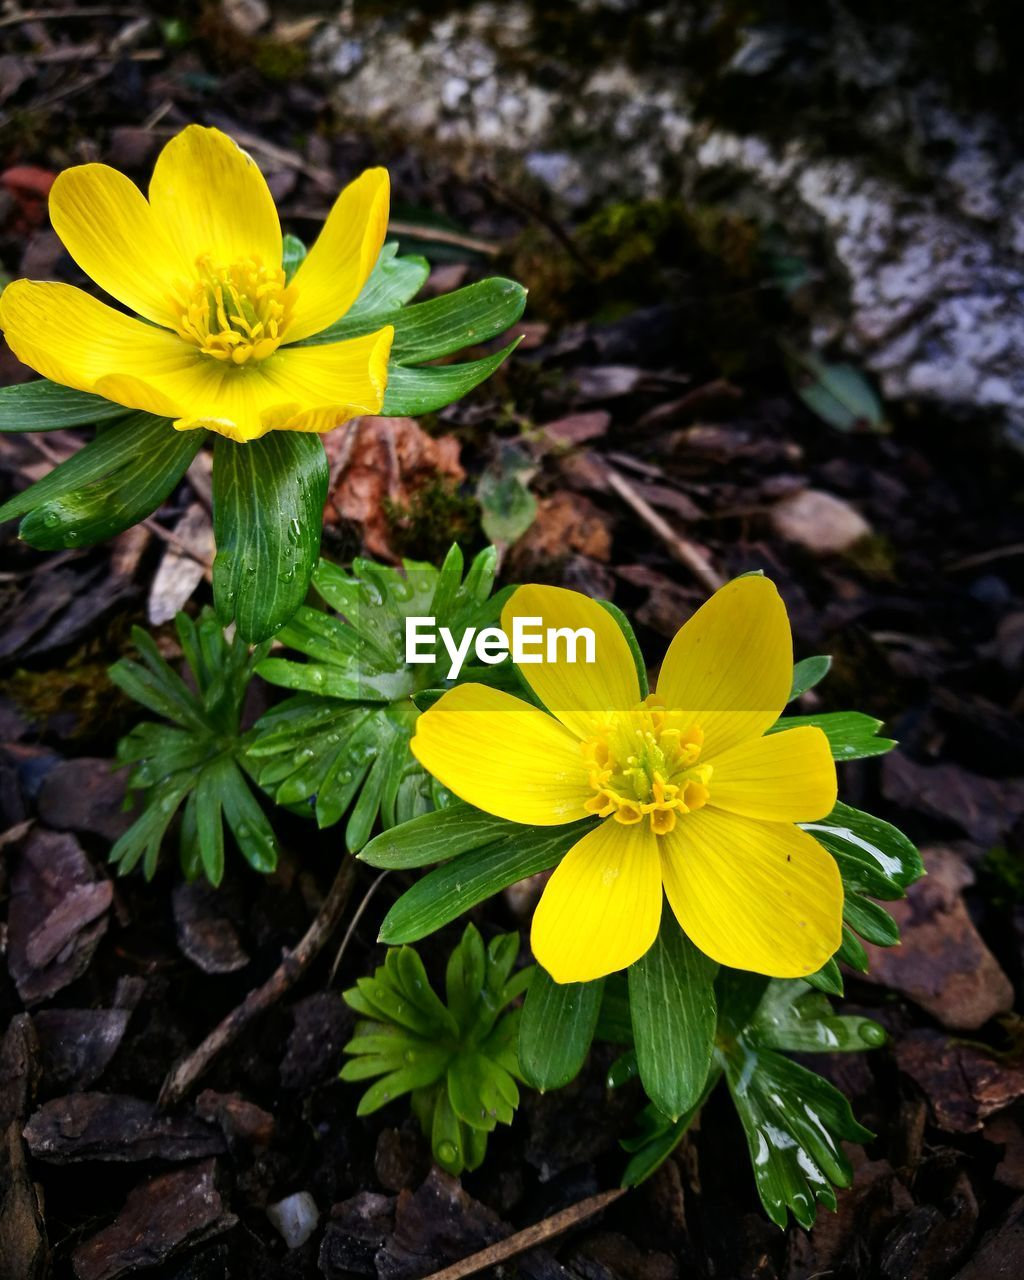 flower, yellow, petal, growth, fragility, nature, flower head, beauty in nature, freshness, plant, blooming, pollen, no people, outdoors, close-up, day, crocus